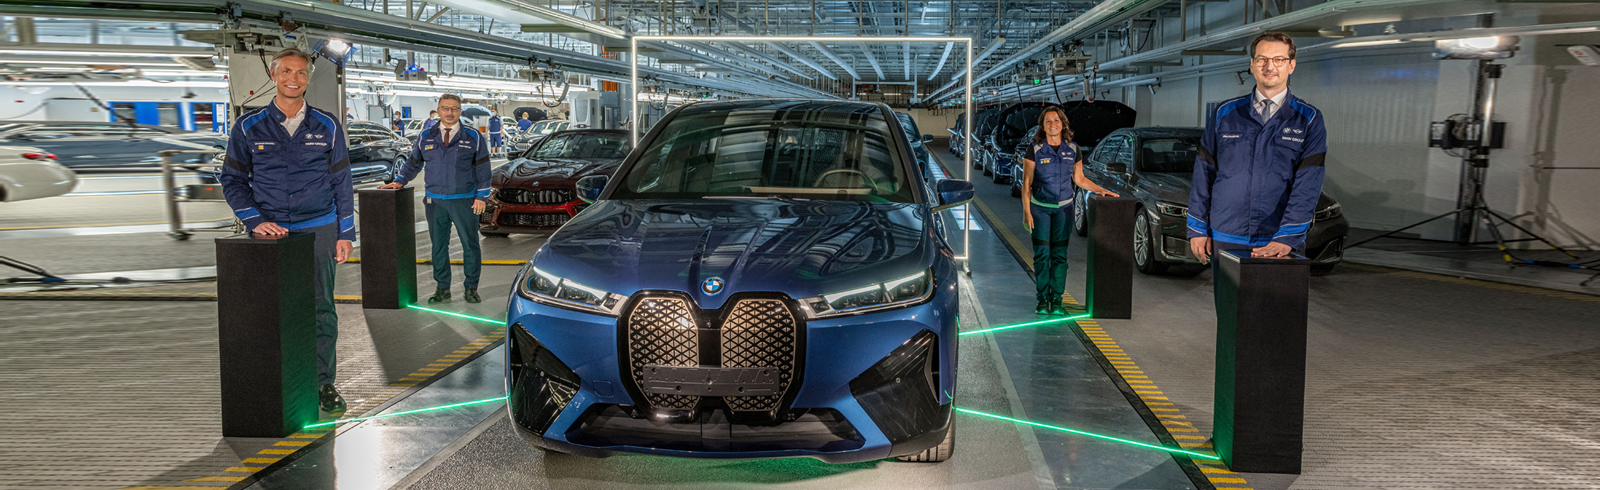 The BMW iX entered production at the Dingolfing plant in Lower Bavaria, Germany